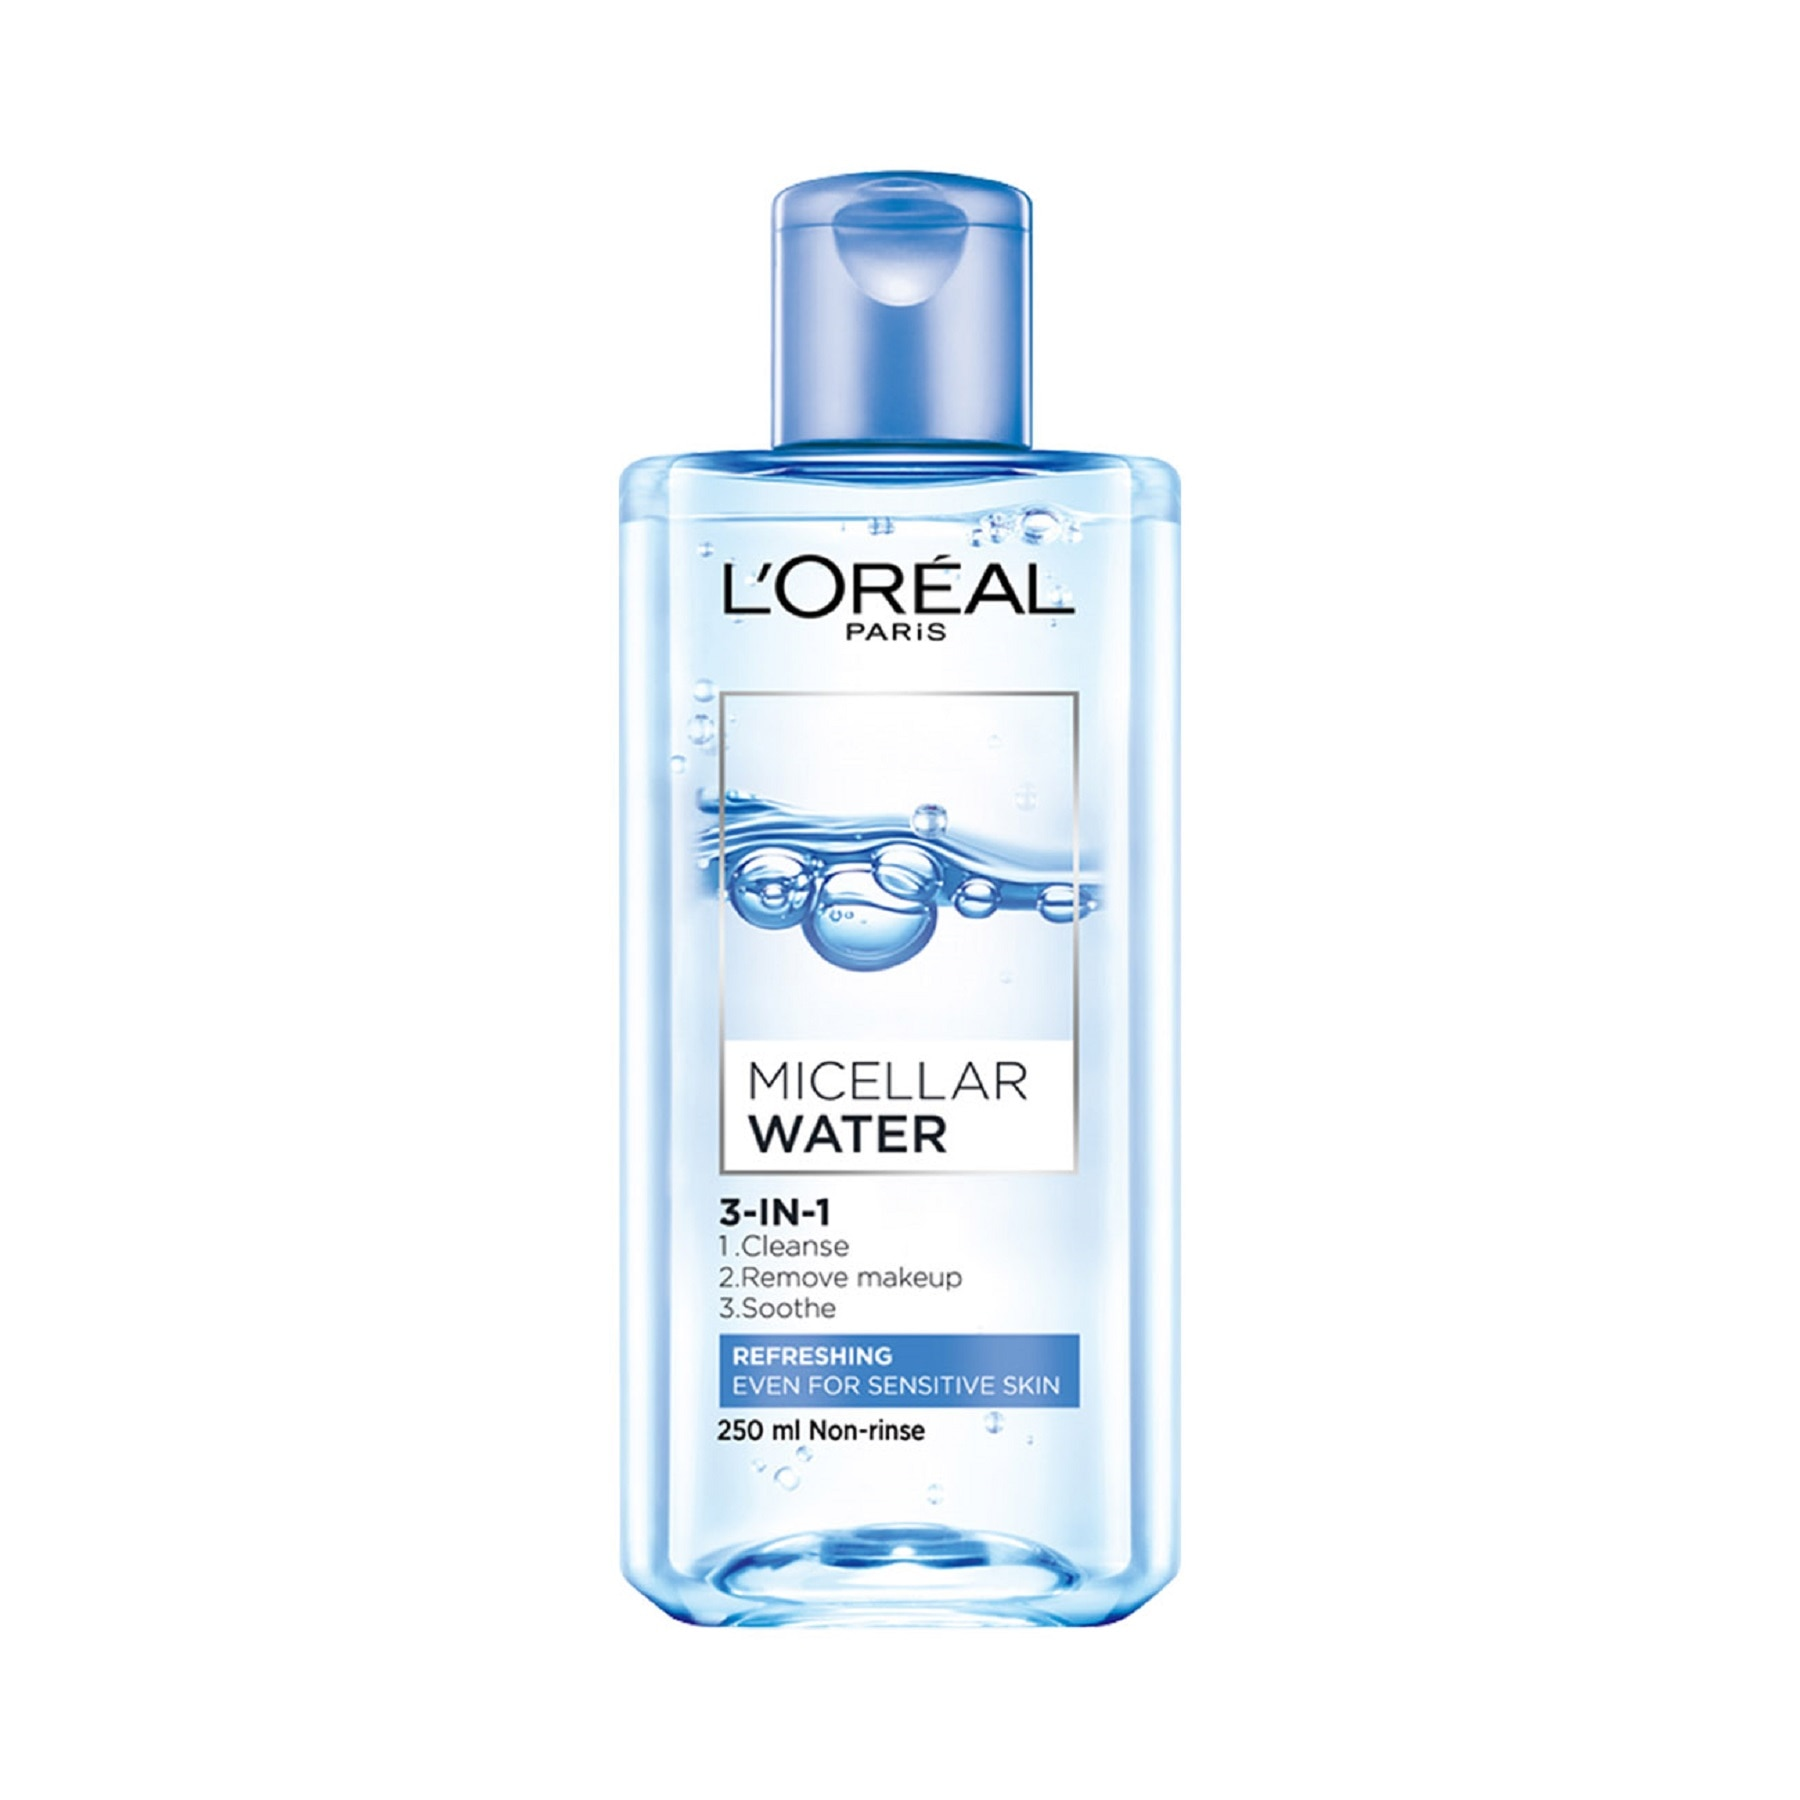 LOREALParis Micellar Water - Refreshing (Blue) 250mL,For WomenFree (1) Watsons Dermaction Plus Antiacne St20x2 for every purchase of Skin Care products